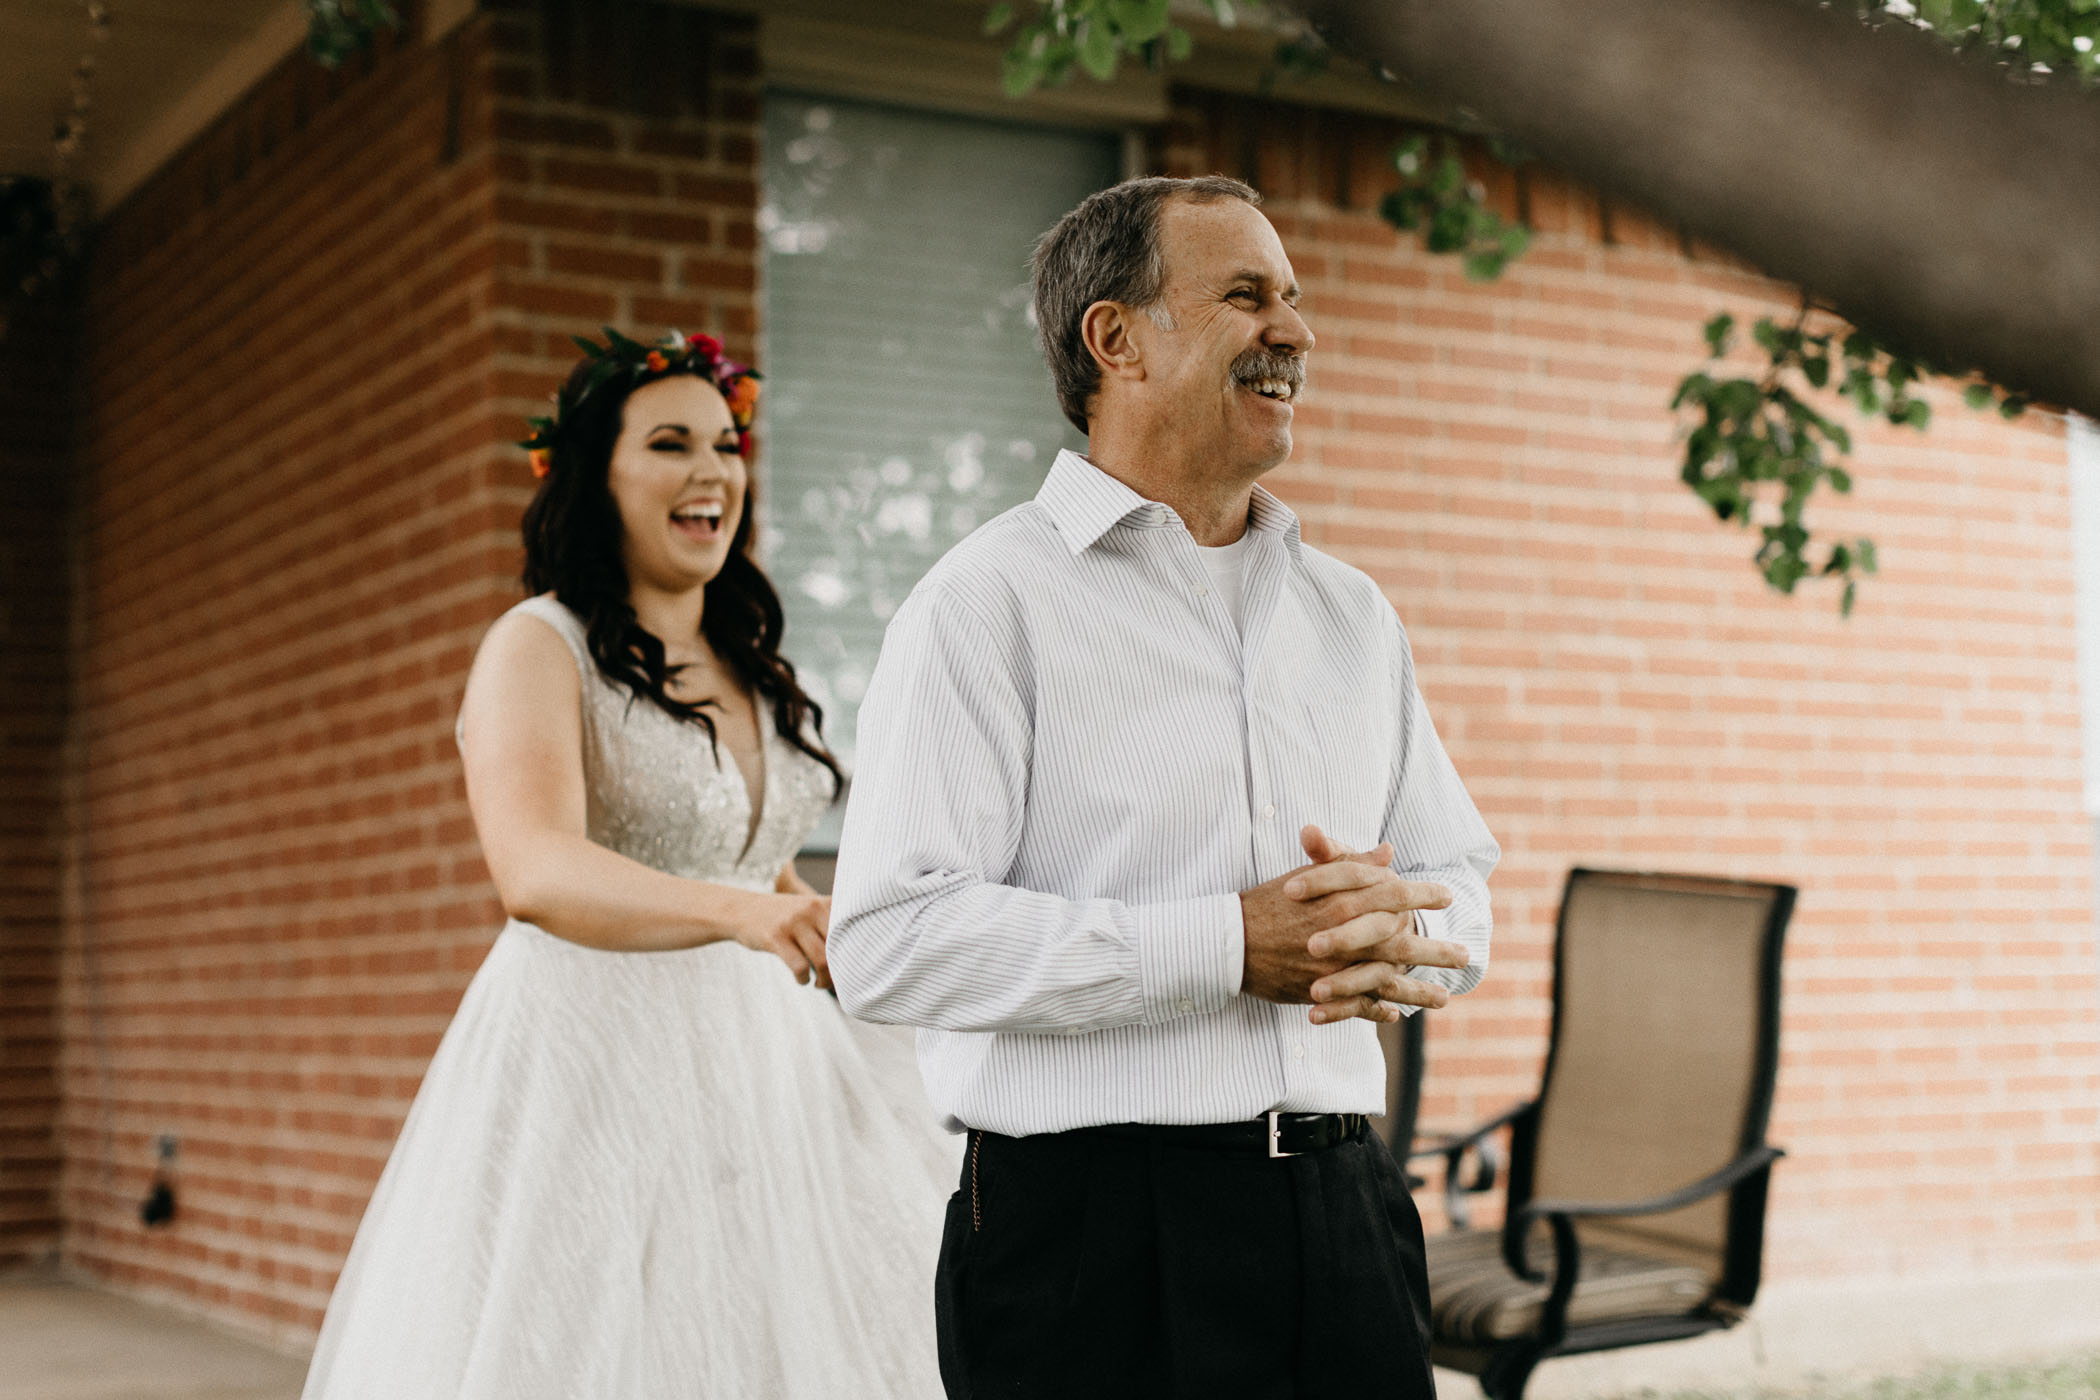 Father of the bride about to see her for the first time for an emotional moment